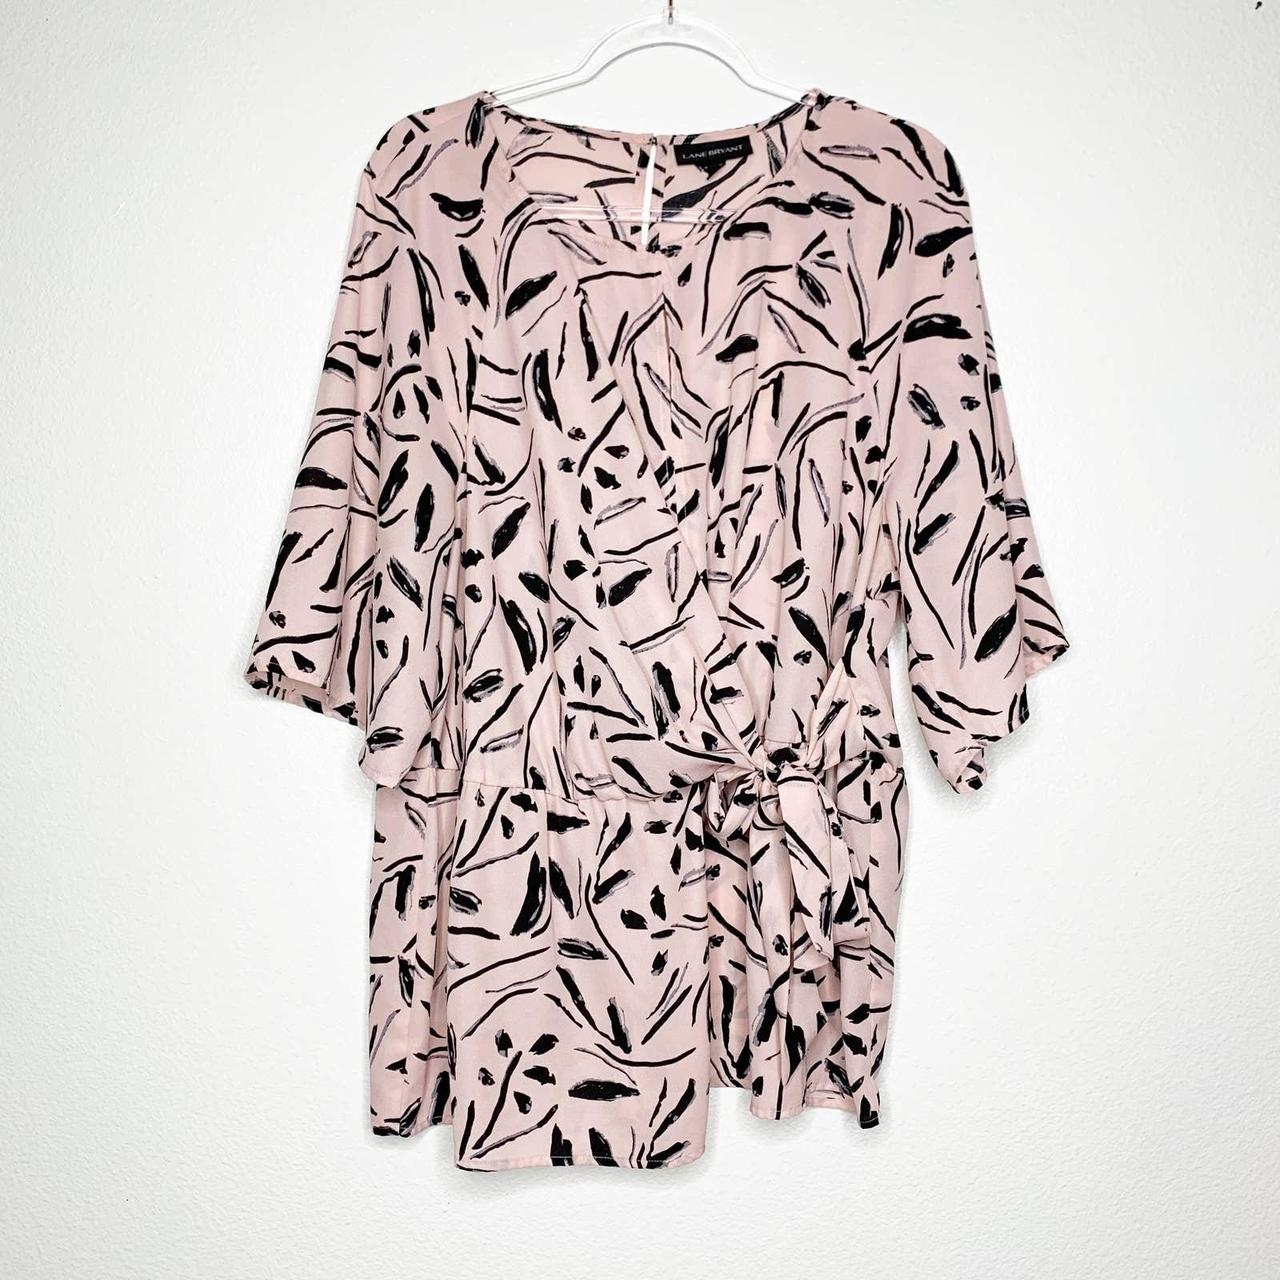 Product Image 1 - LANE BRYANT Floral Abstract Wrap